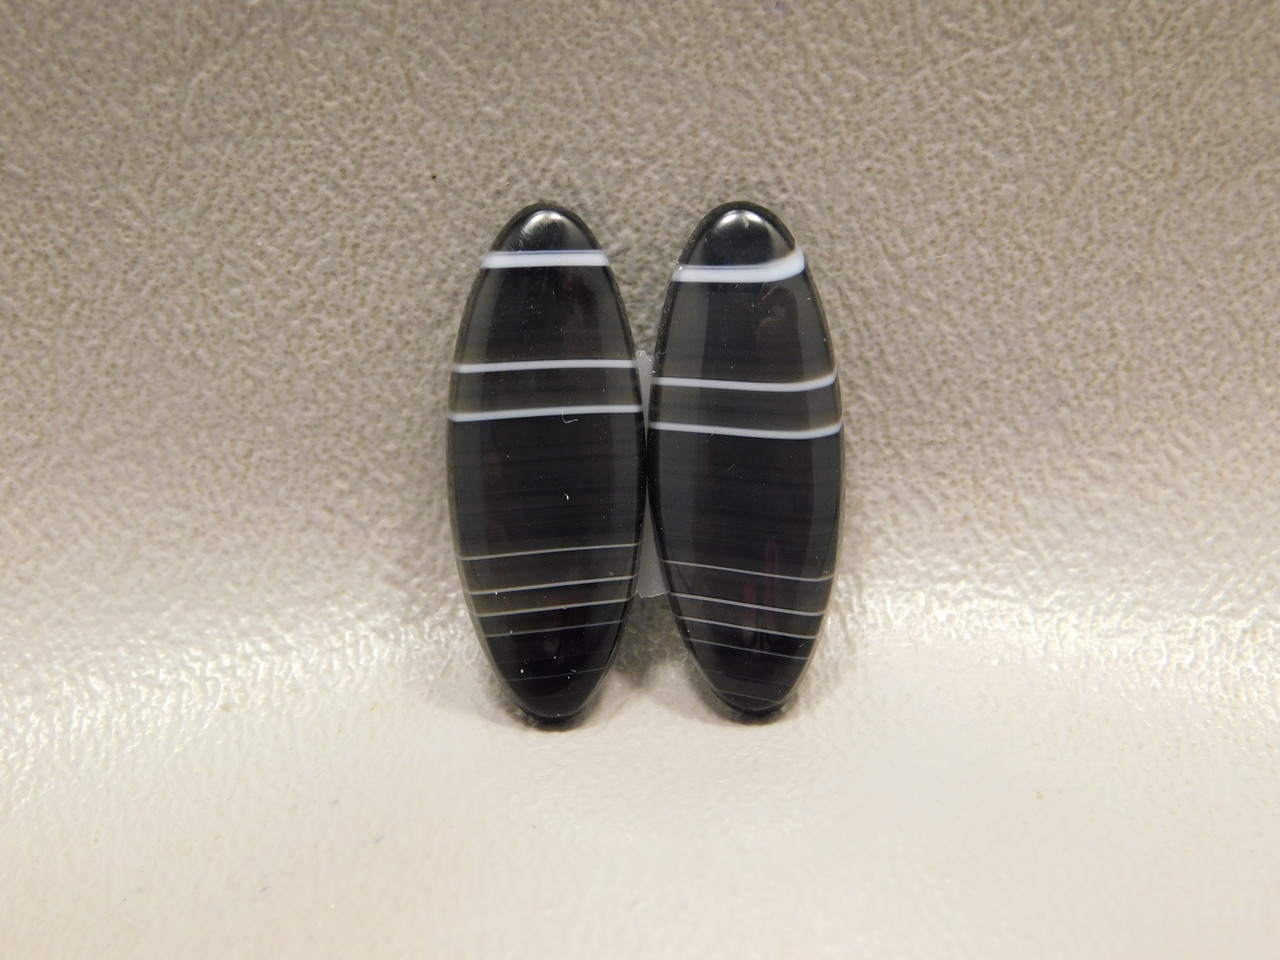 Matched Pair Black Stone Cabochons For Earrings Tuxedo Agate #16